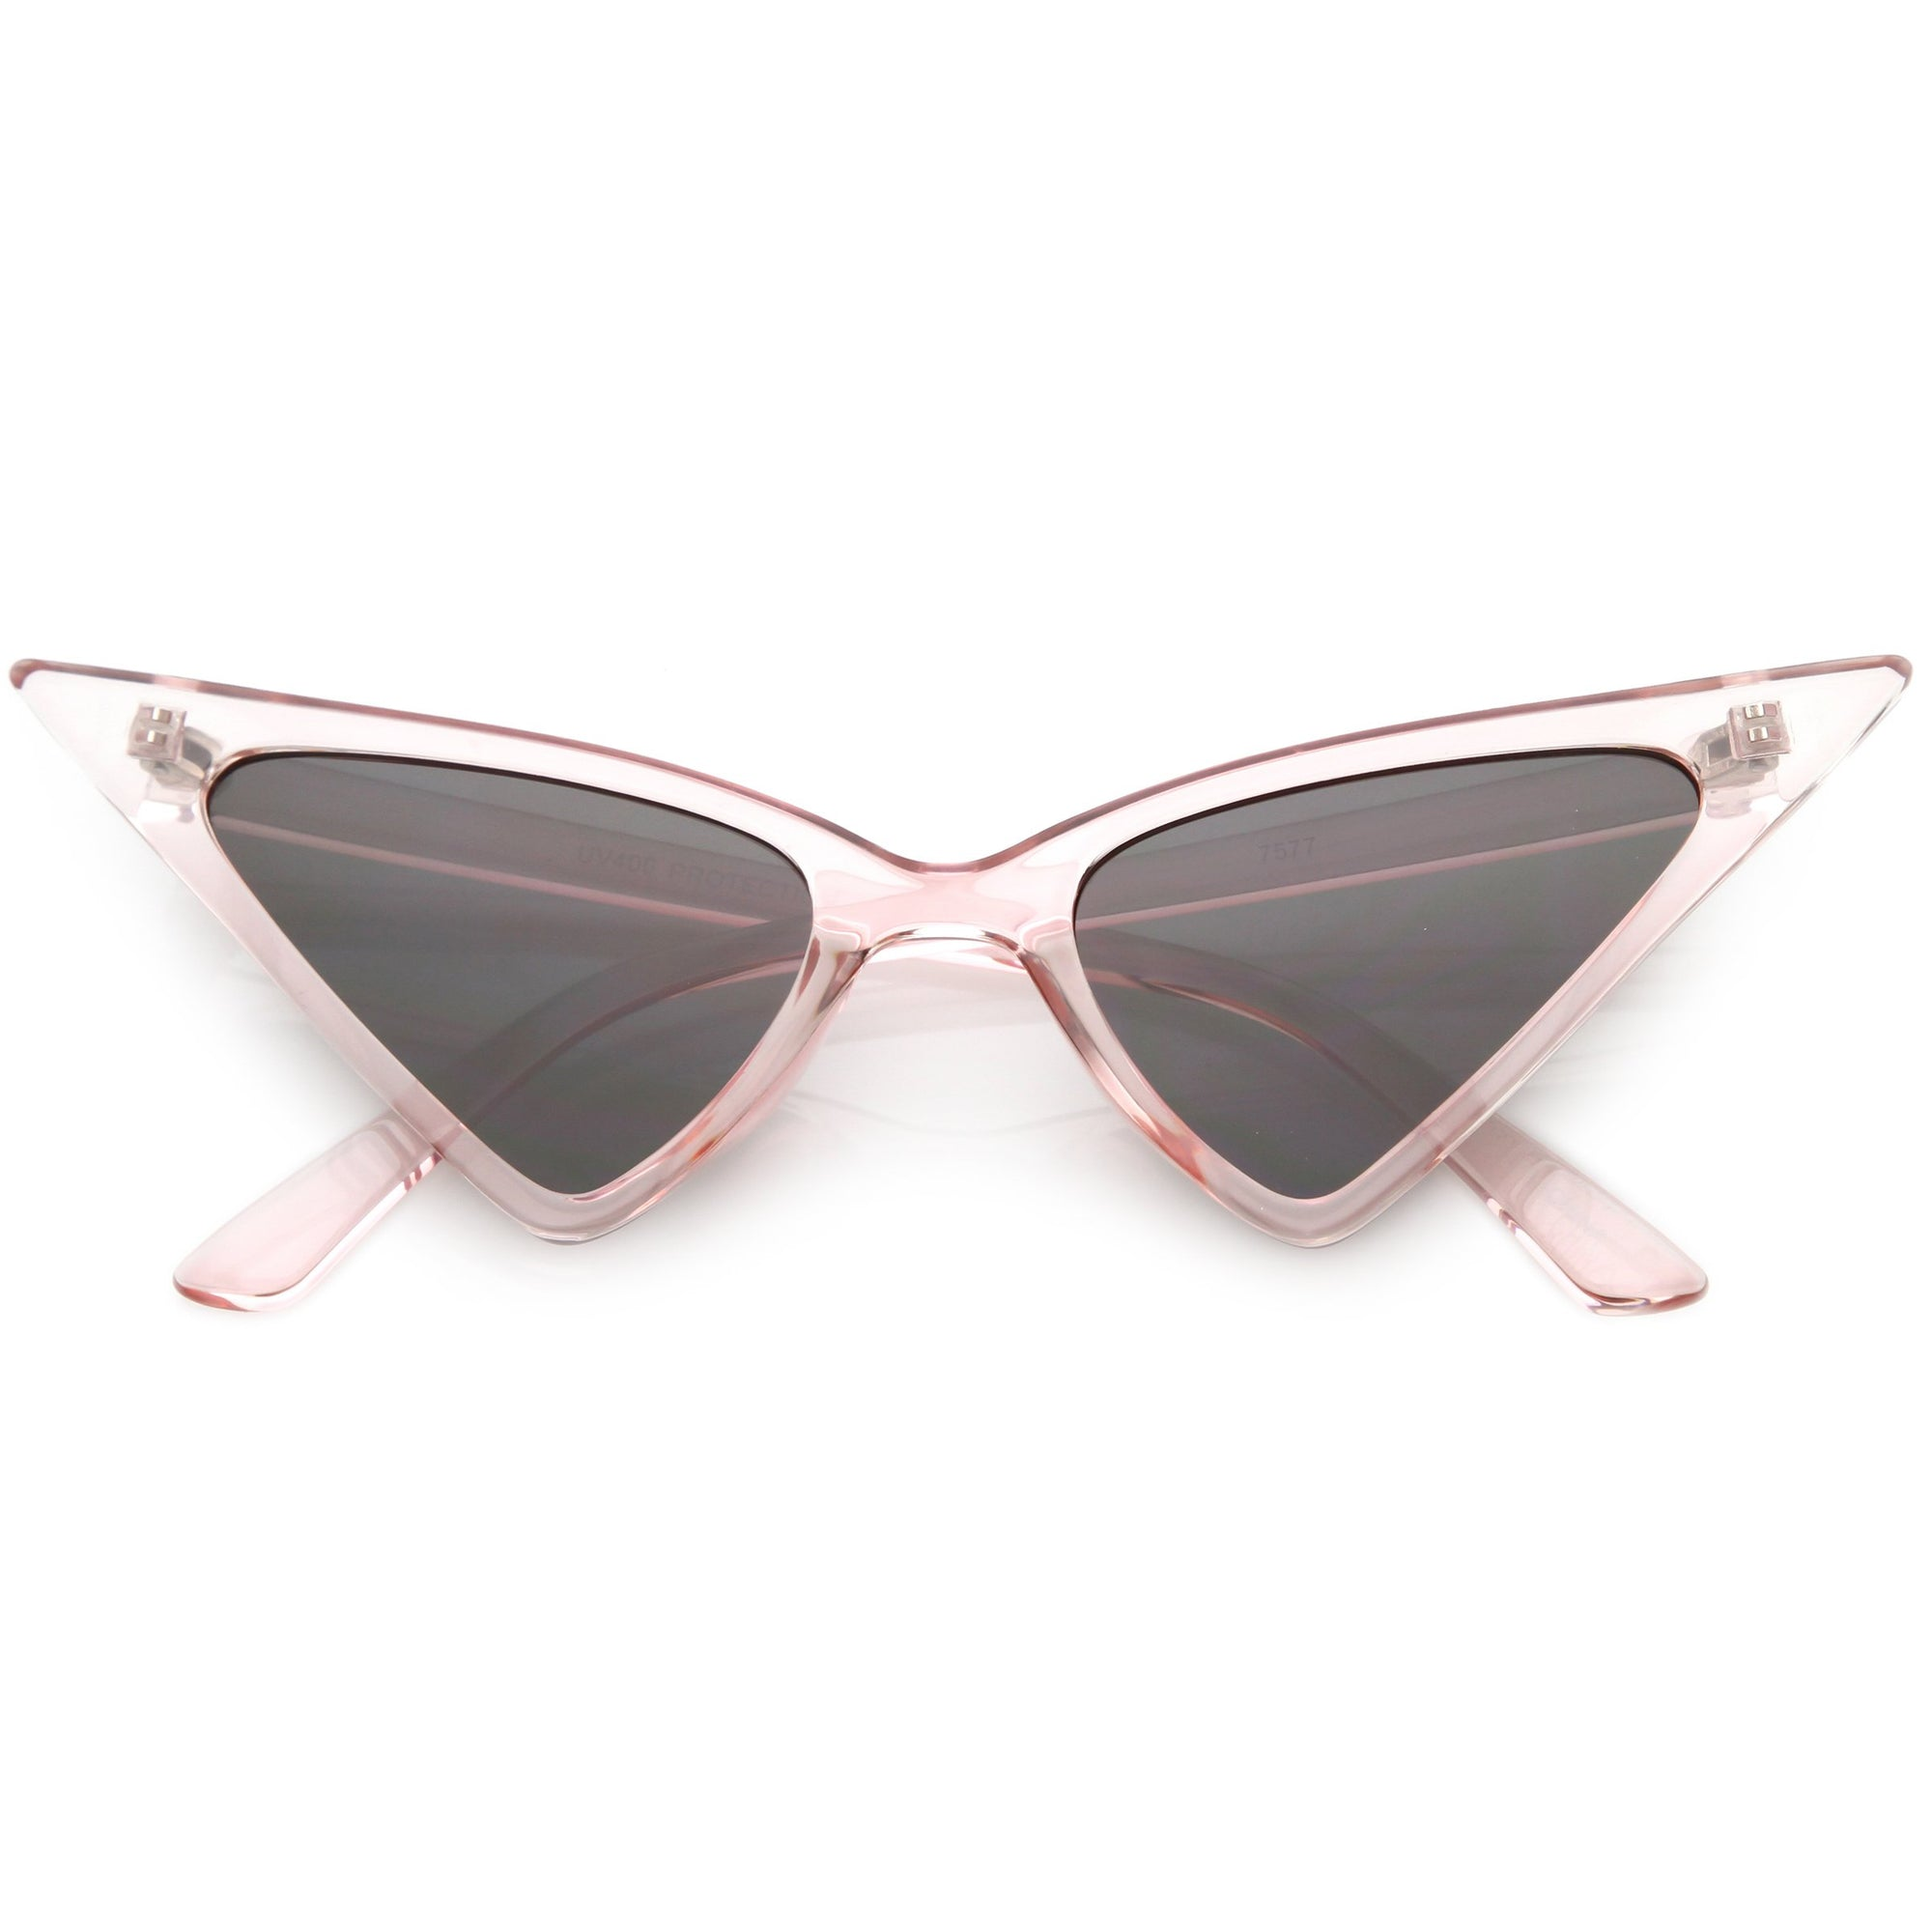 8586d6f8b2 Women s Oversize Retro Modern High Pointed Cat Eye Sunglasses C745